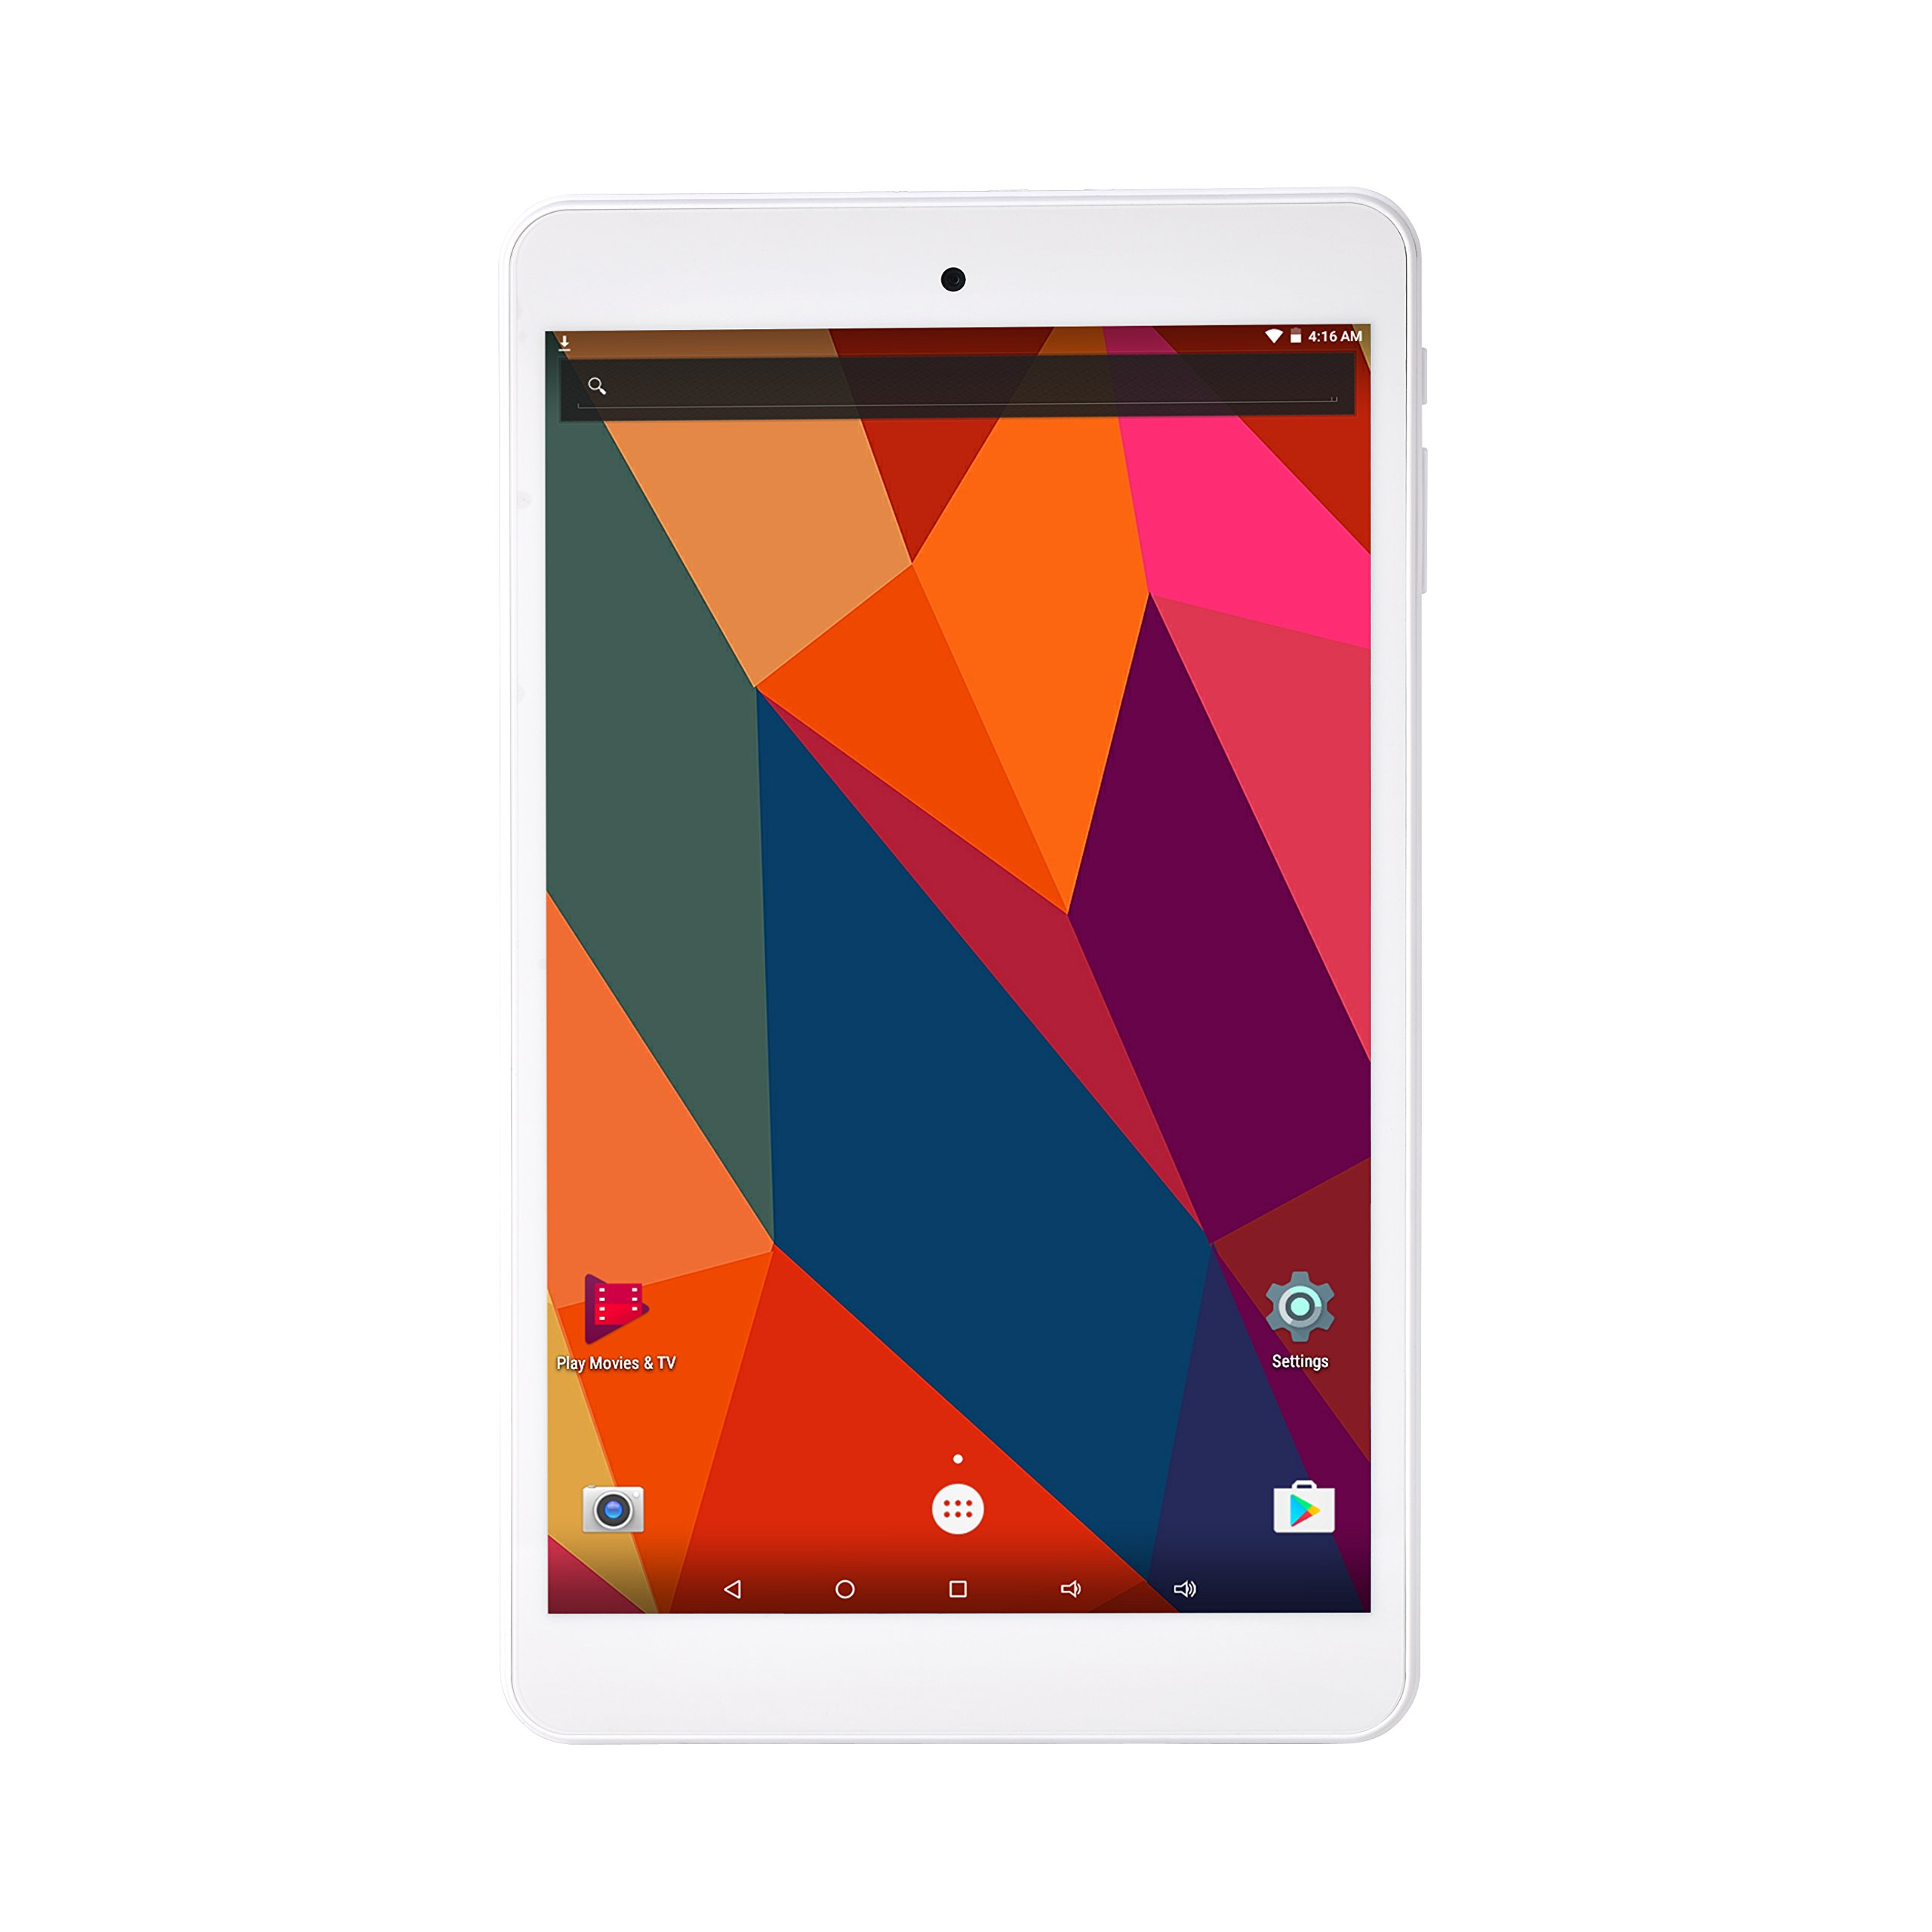 8 inch Android Tablet Quad core Cortex A53, 1GB RAM, 16GB Storage, HD 1280x800 IPS Display, Dual camera 2.0MP + 5.0MP, Android 6.0, Wifi, Bluetooth 4.0, GPS, FM (white)